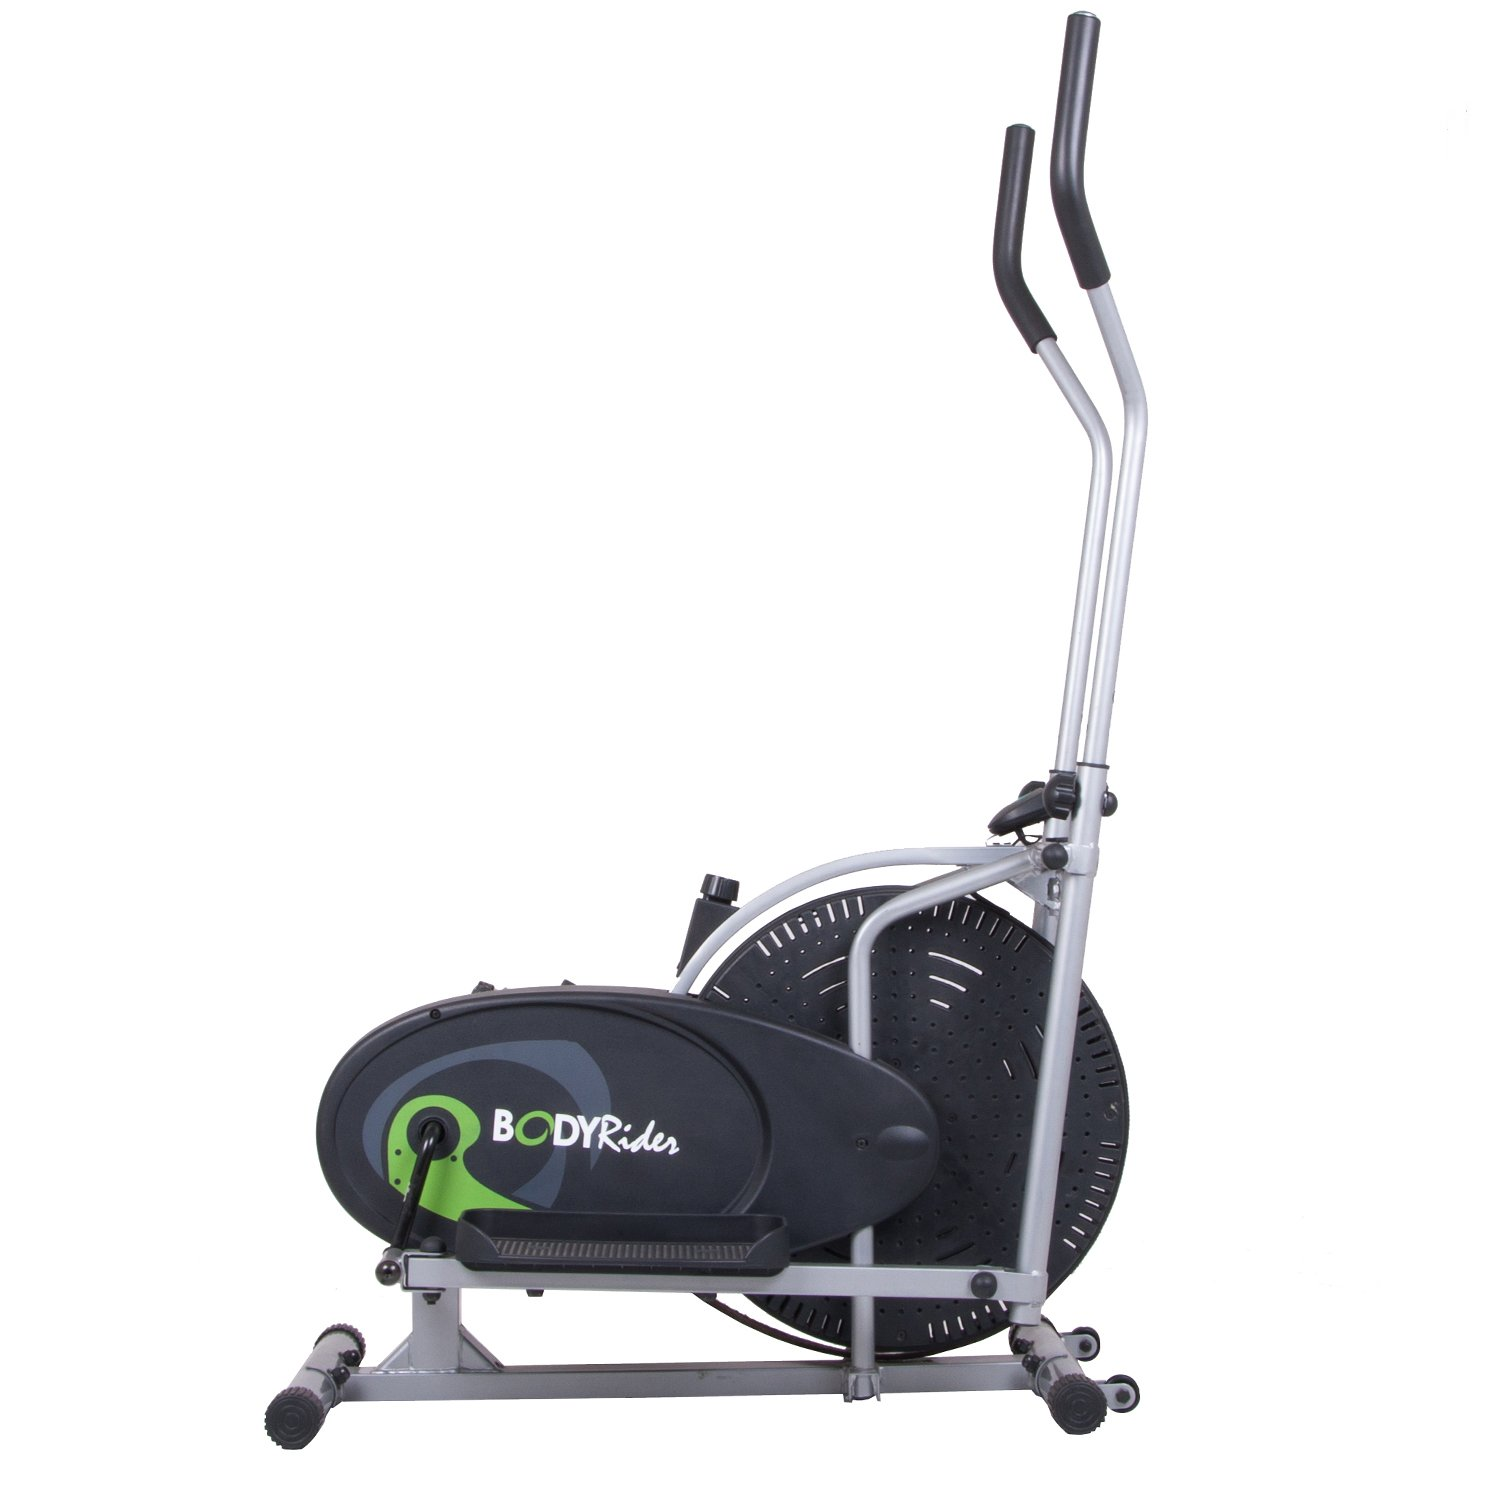 Body Rider Fan Elliptical Trainer with Air Resistance System, Adjustable Levels and Easy Computer BR1830 by Body Max (Image #7)